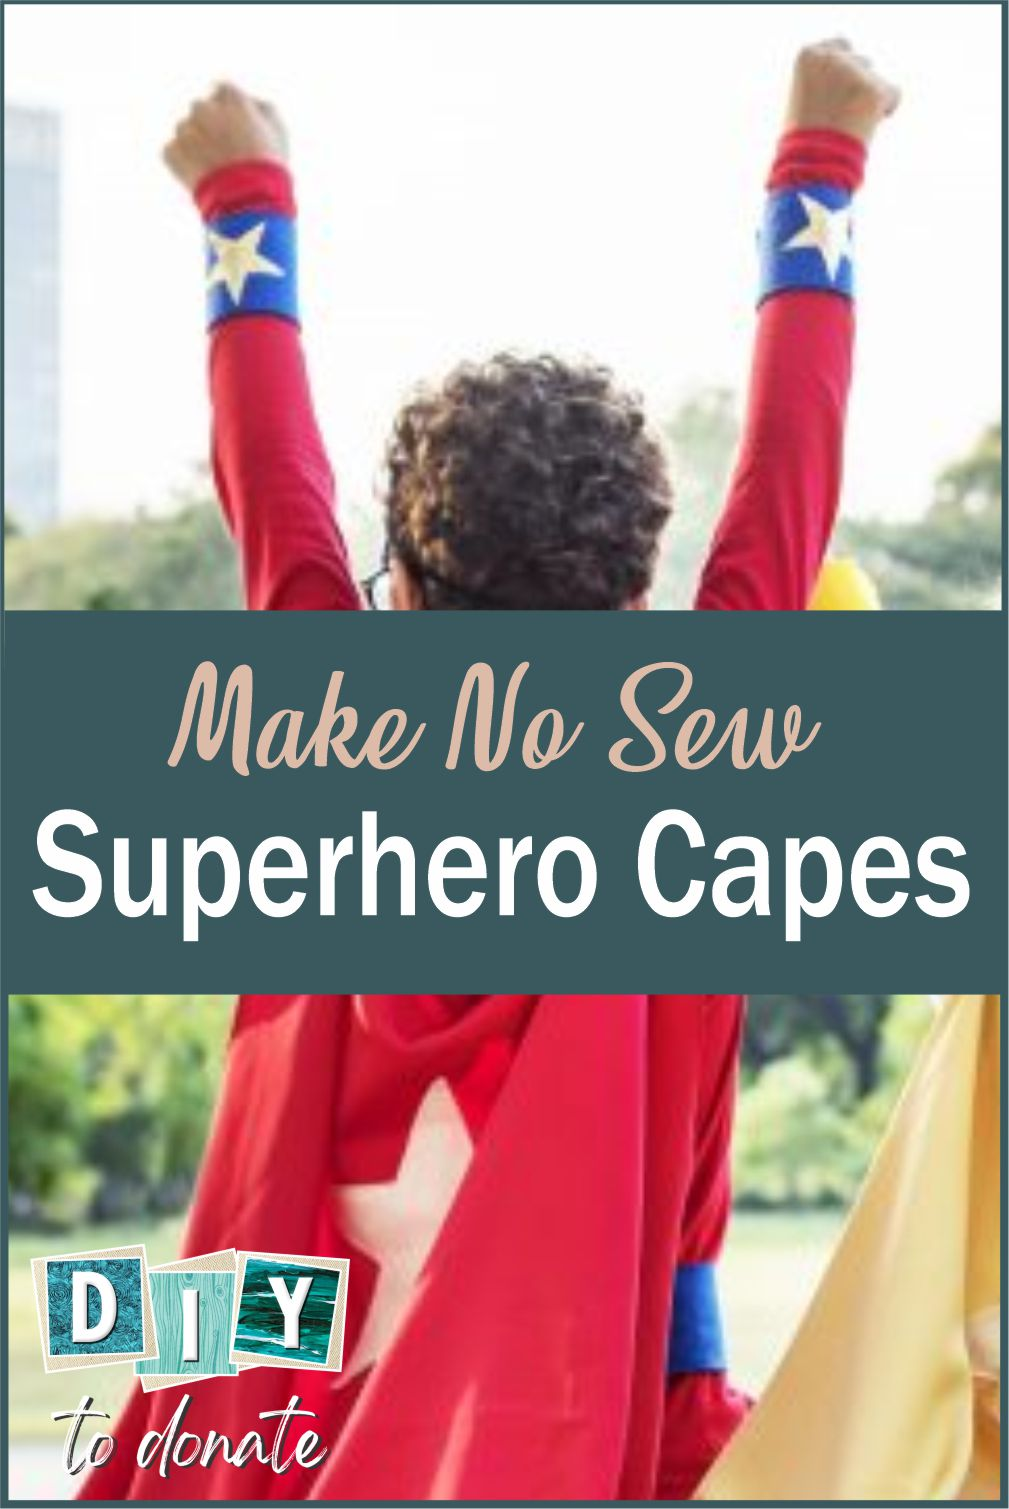 It's super easy to make a no-sew superhero cape. You just need a a few simple supplies, our cutting instructions and our free printable. #diytodonate #superhero #superherocapes #capes #dressup